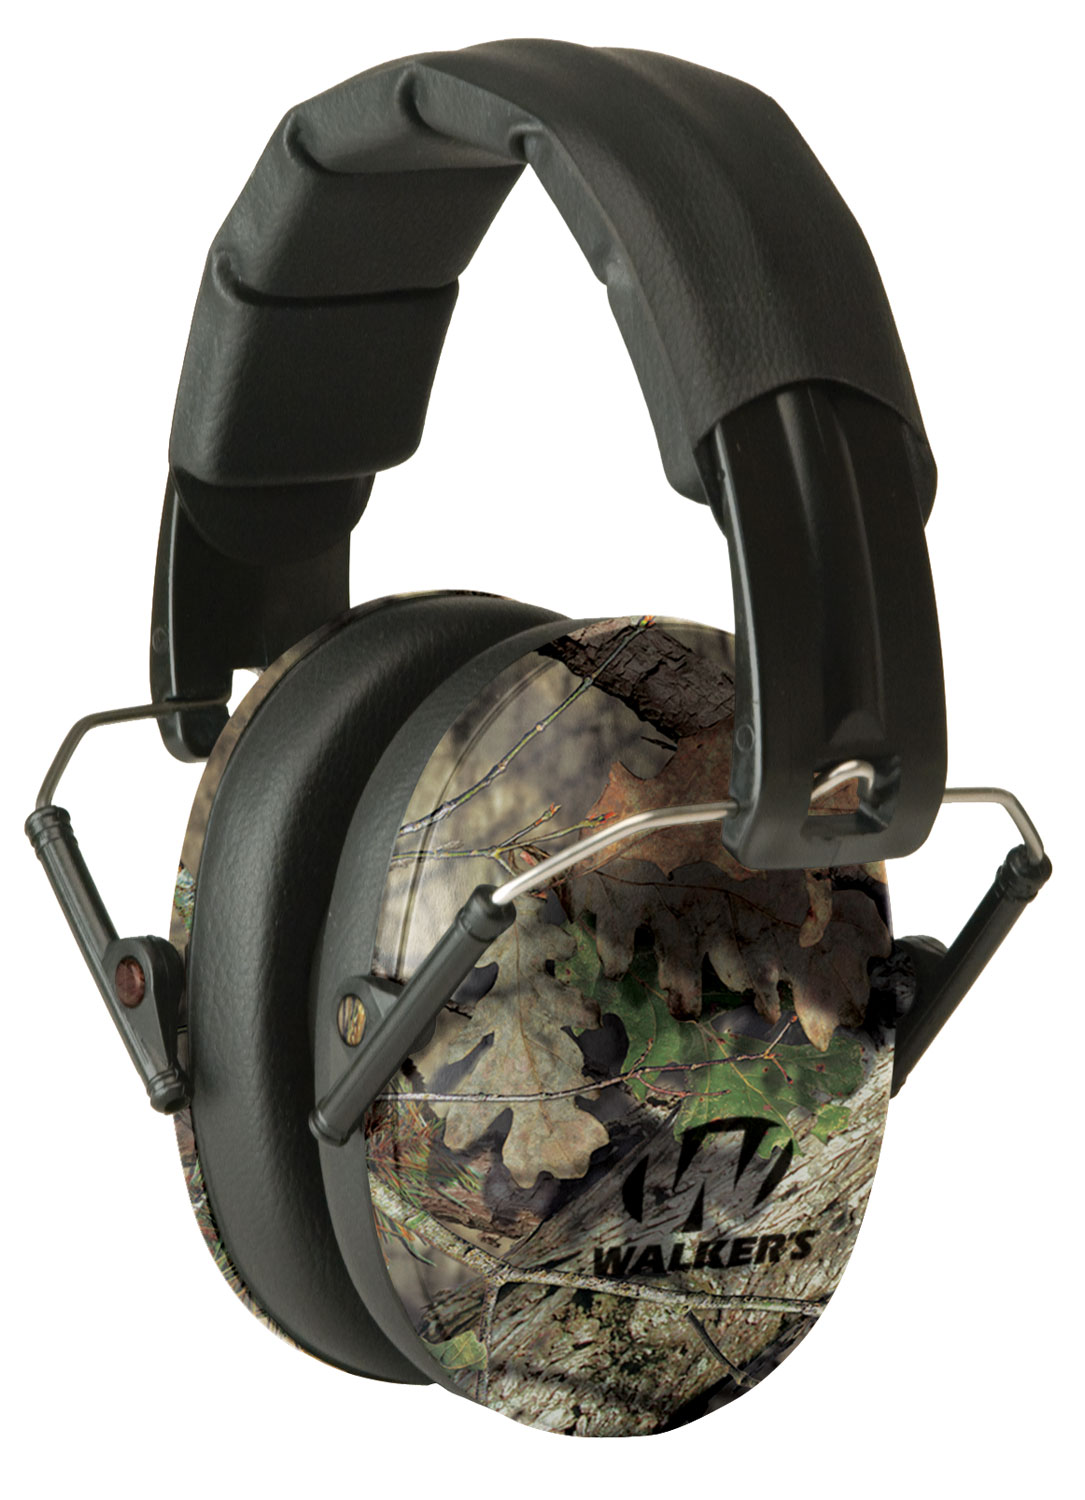 WALKERS MUFF SHOOTING PASSIVE PRO-LOW PROFILE 22dB MOSSY OAK